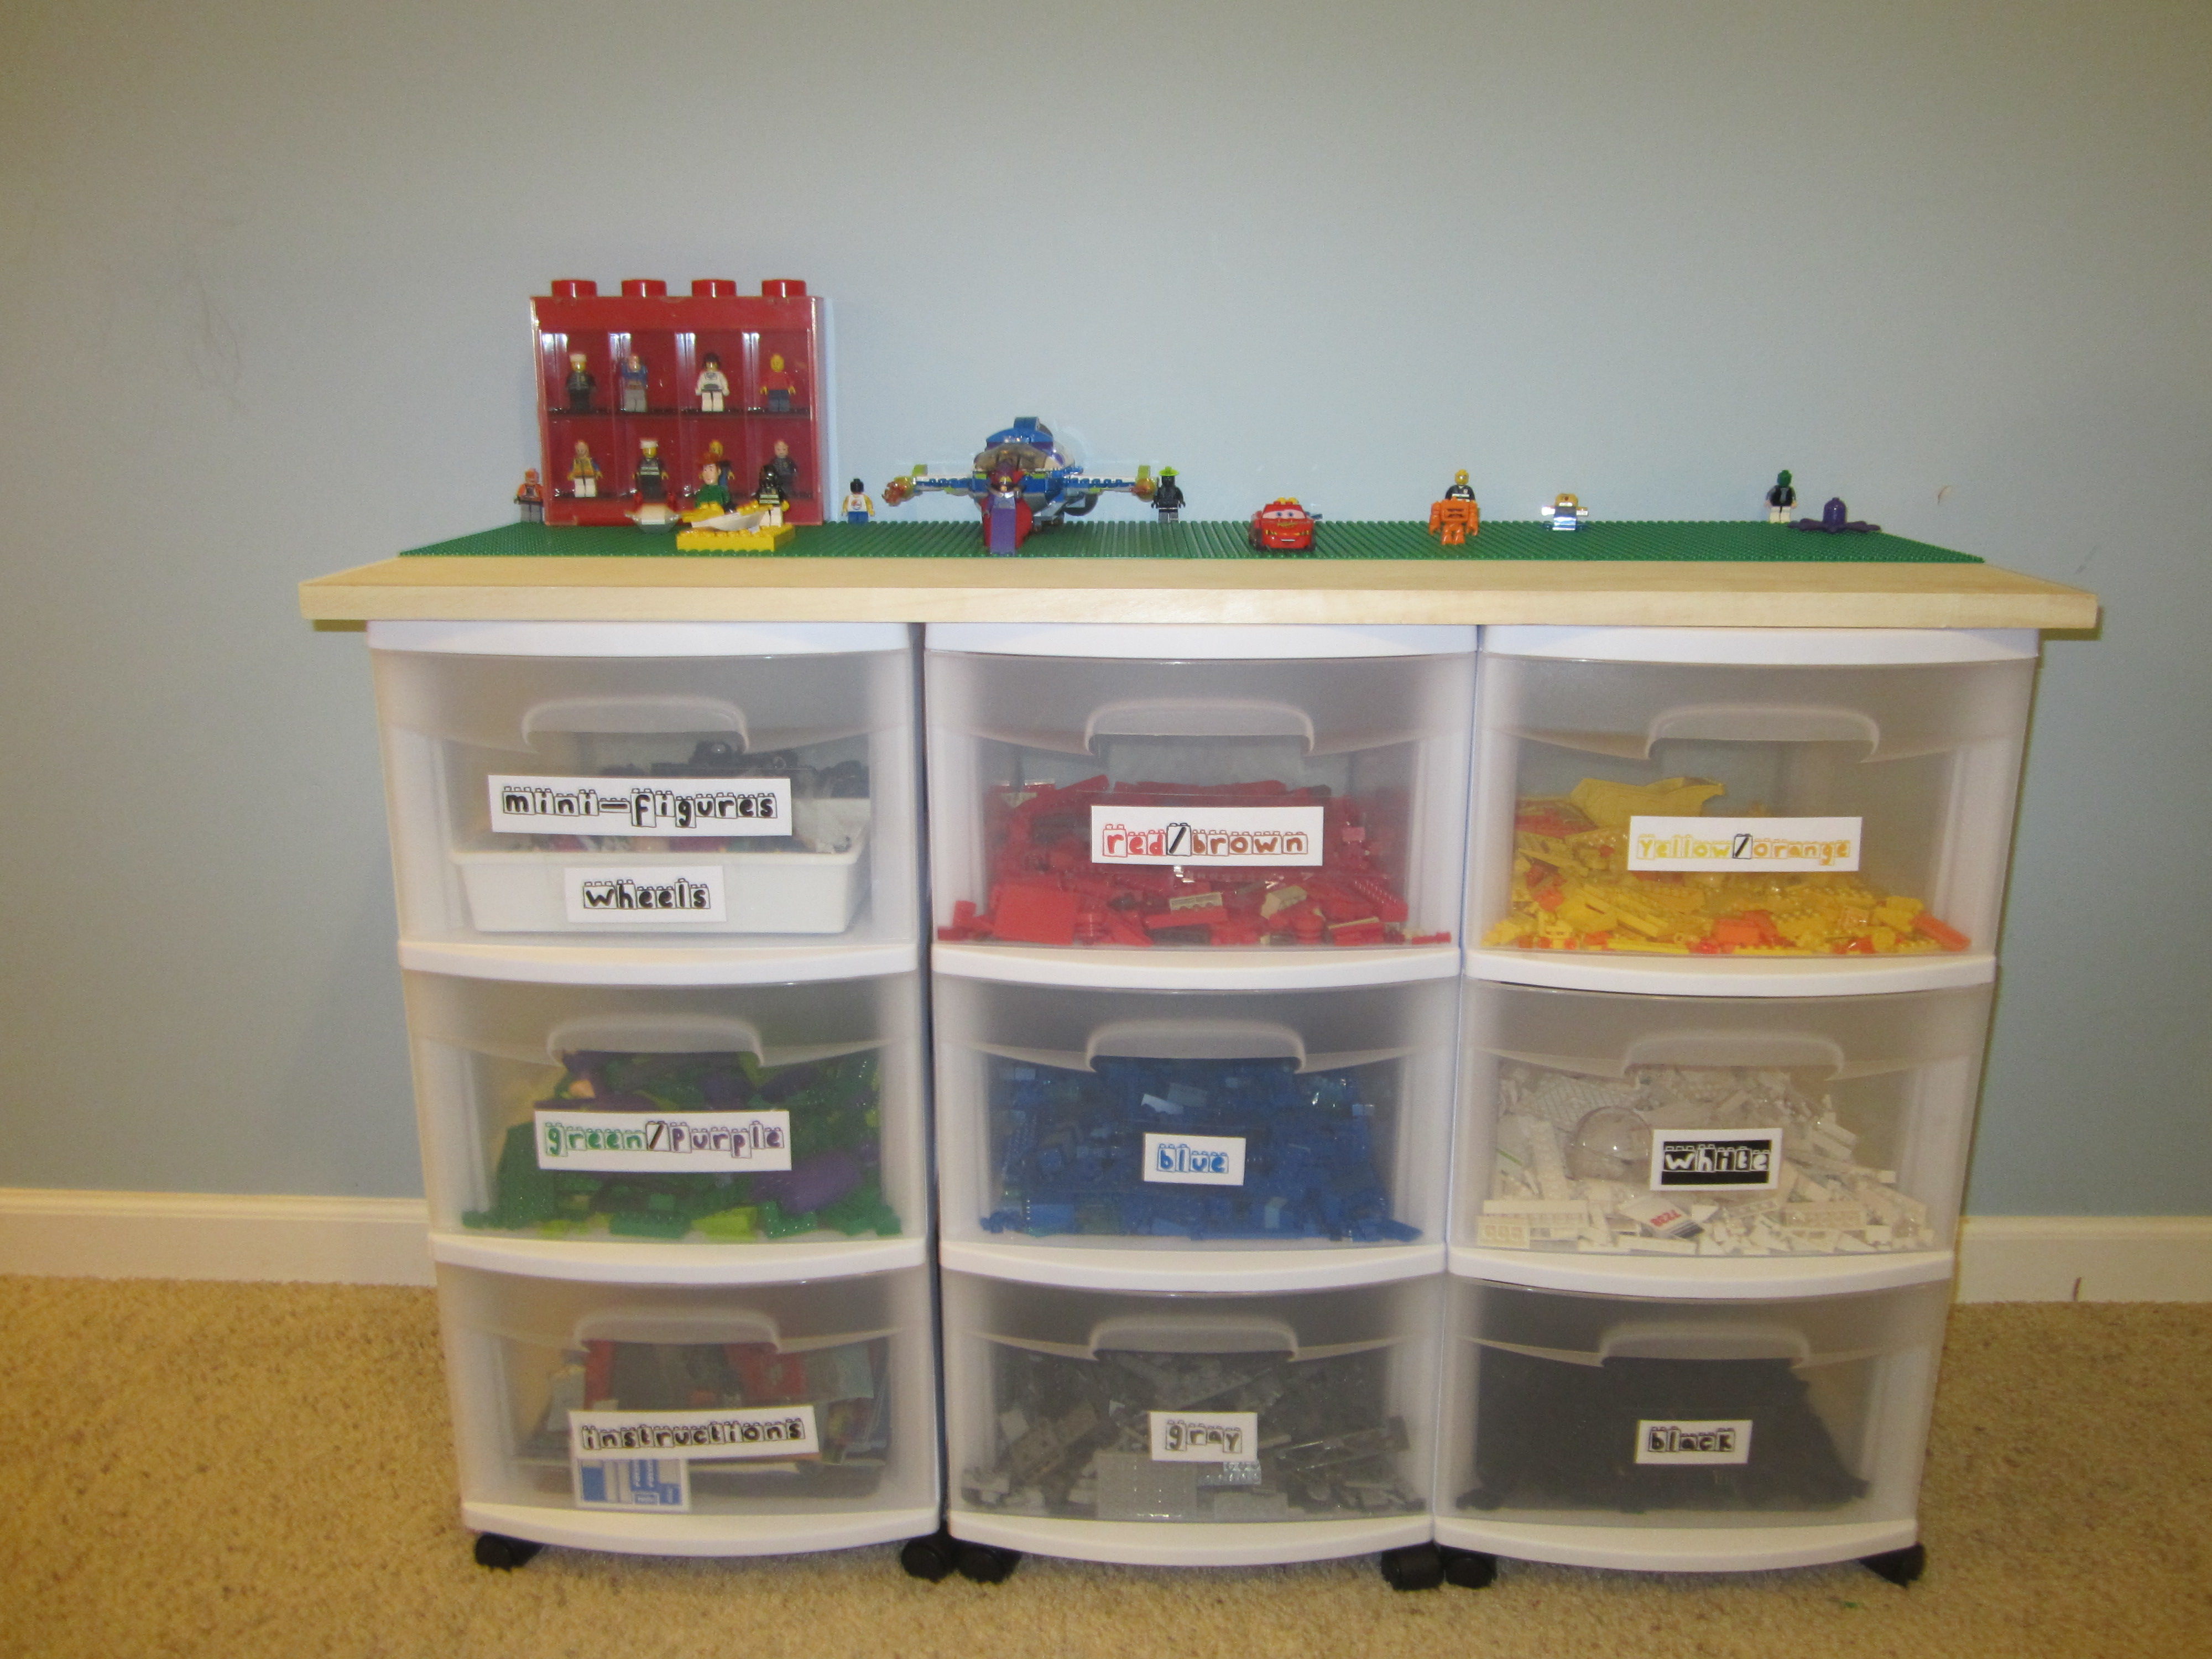 How To Make A Lego Table With Storage Containers